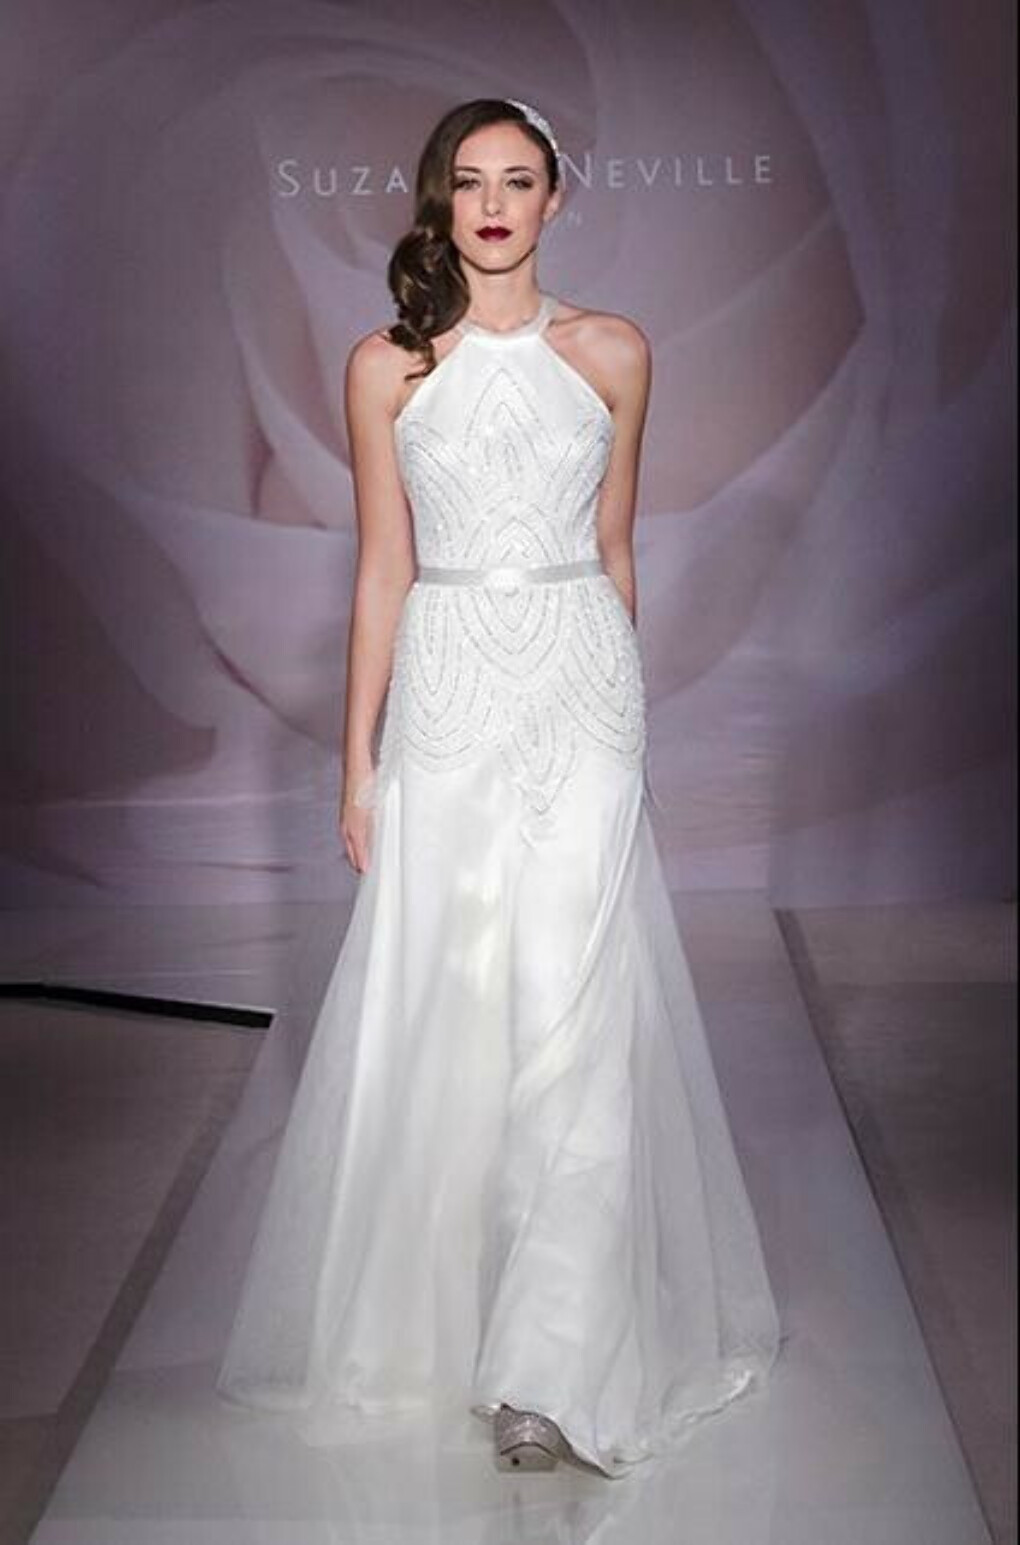 Deco by Suzanne Neville Wedding dress